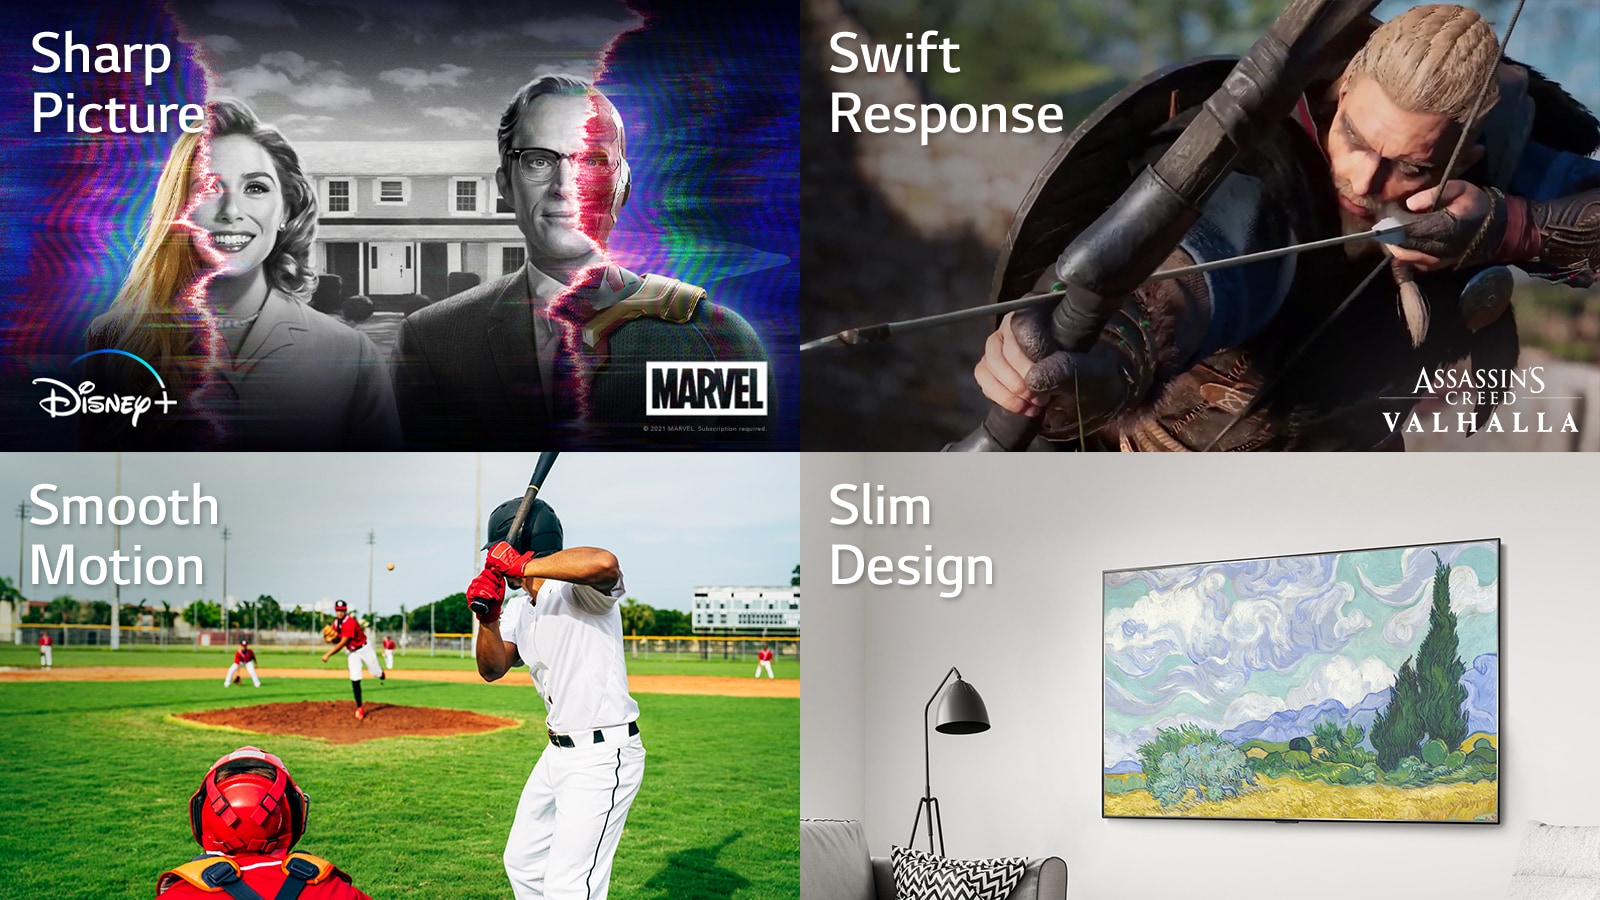 A scene from Marvel WandaVision on Disney+, A game scene from Assassin's Creed Valhalla, A hitter trying to hit a baseball during the game, A work of art on a TV screen hung on the wall.